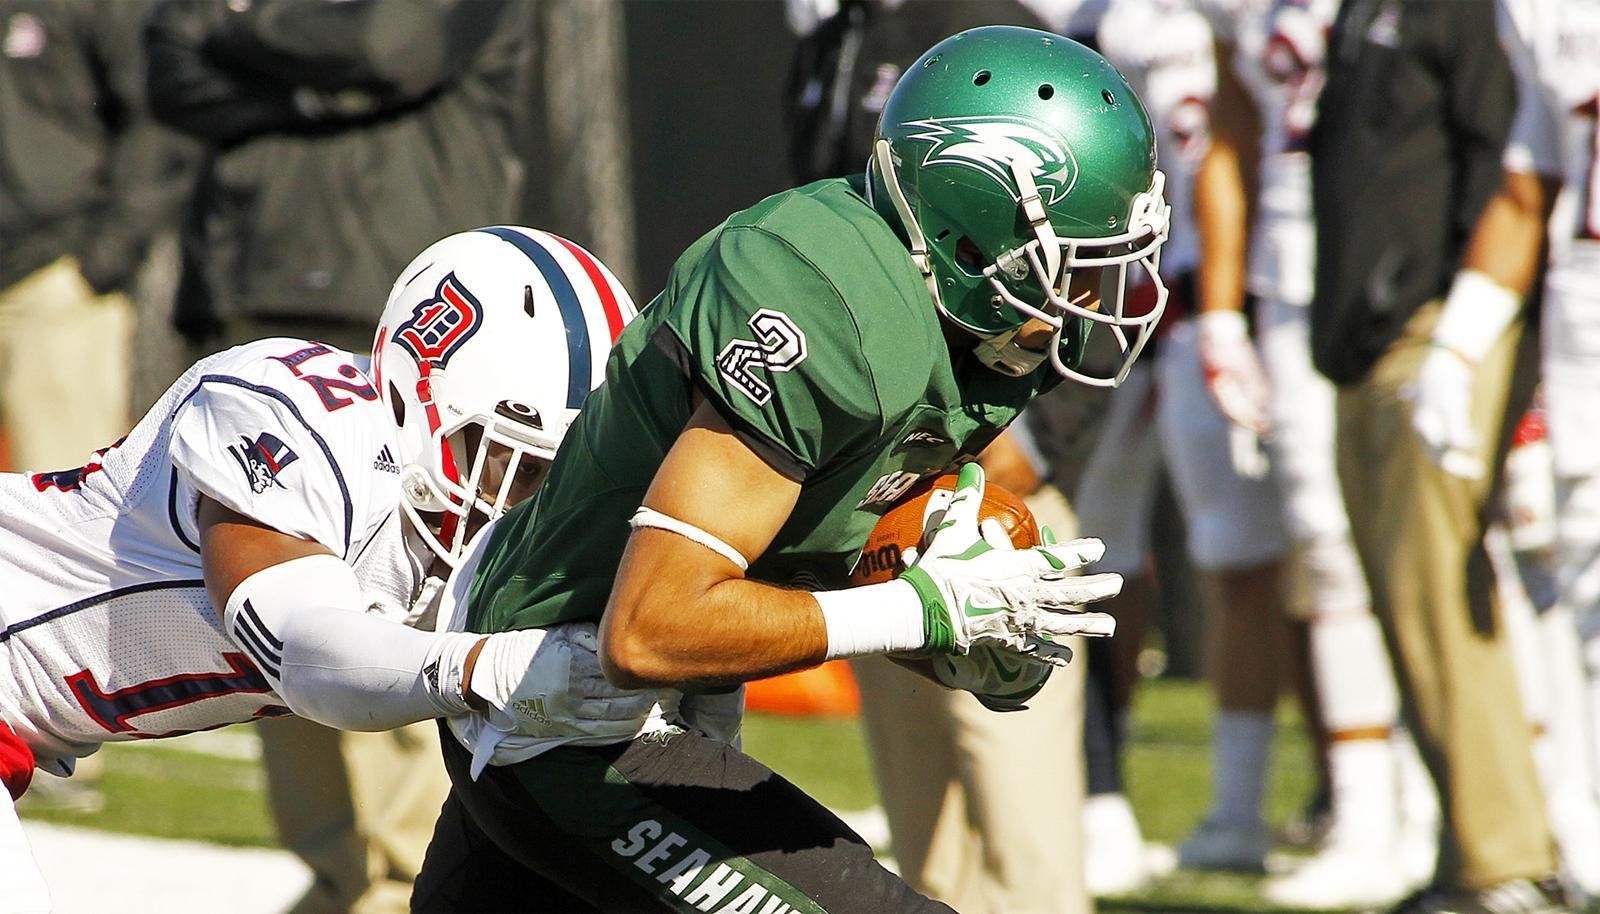 Nour Aly - 2016 - Football - Wagner College Athletics